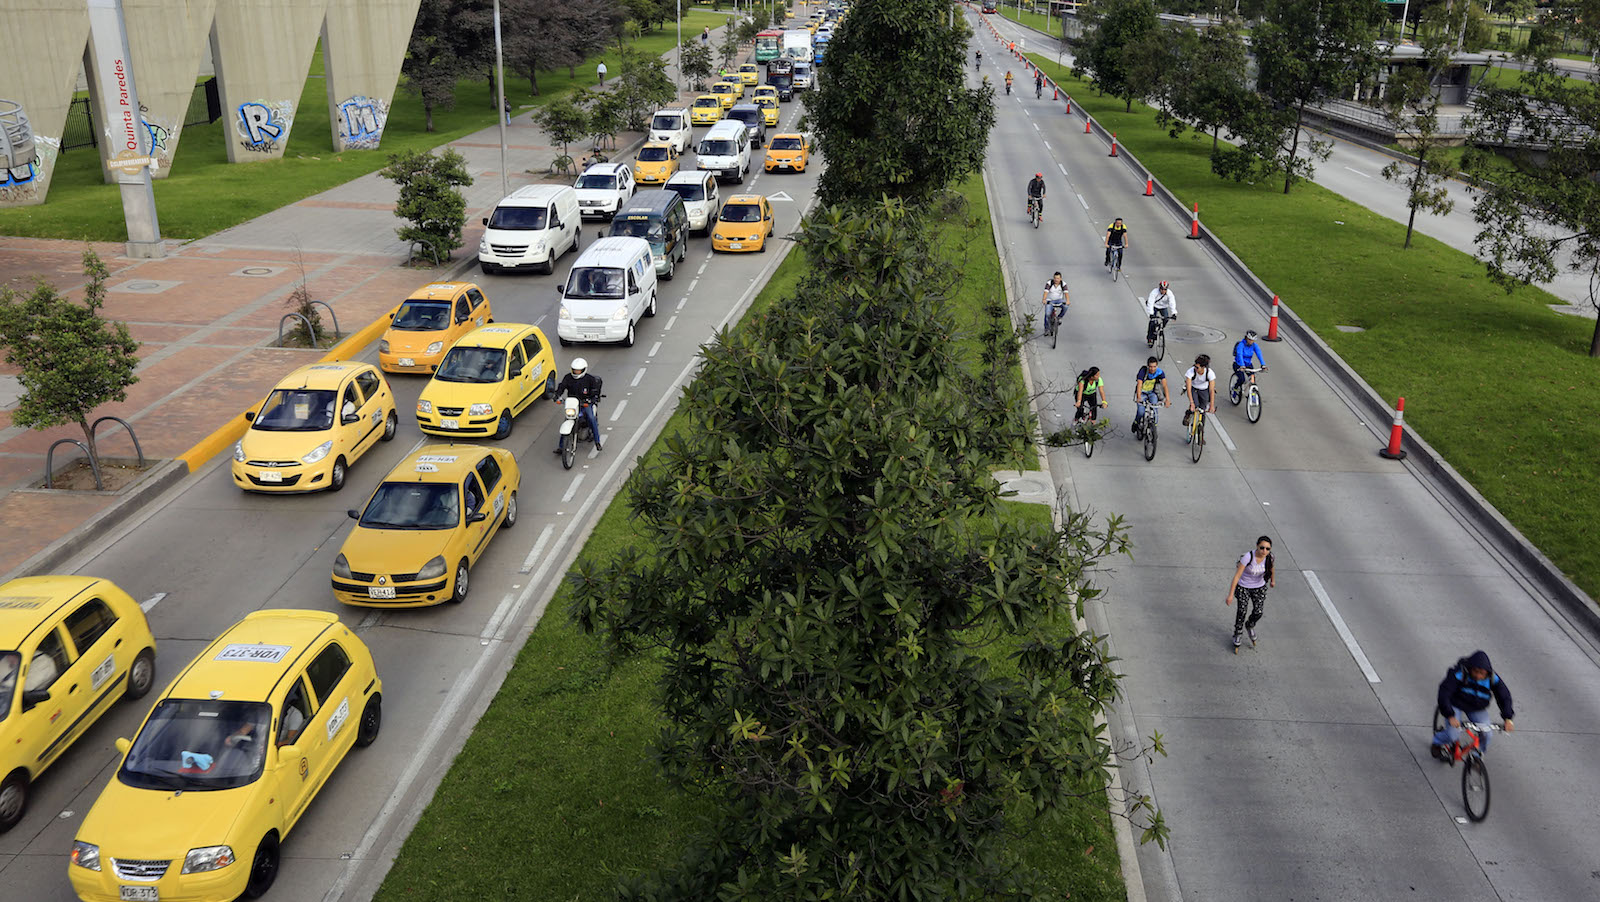 Cars cause traffic jams while bikes move freely